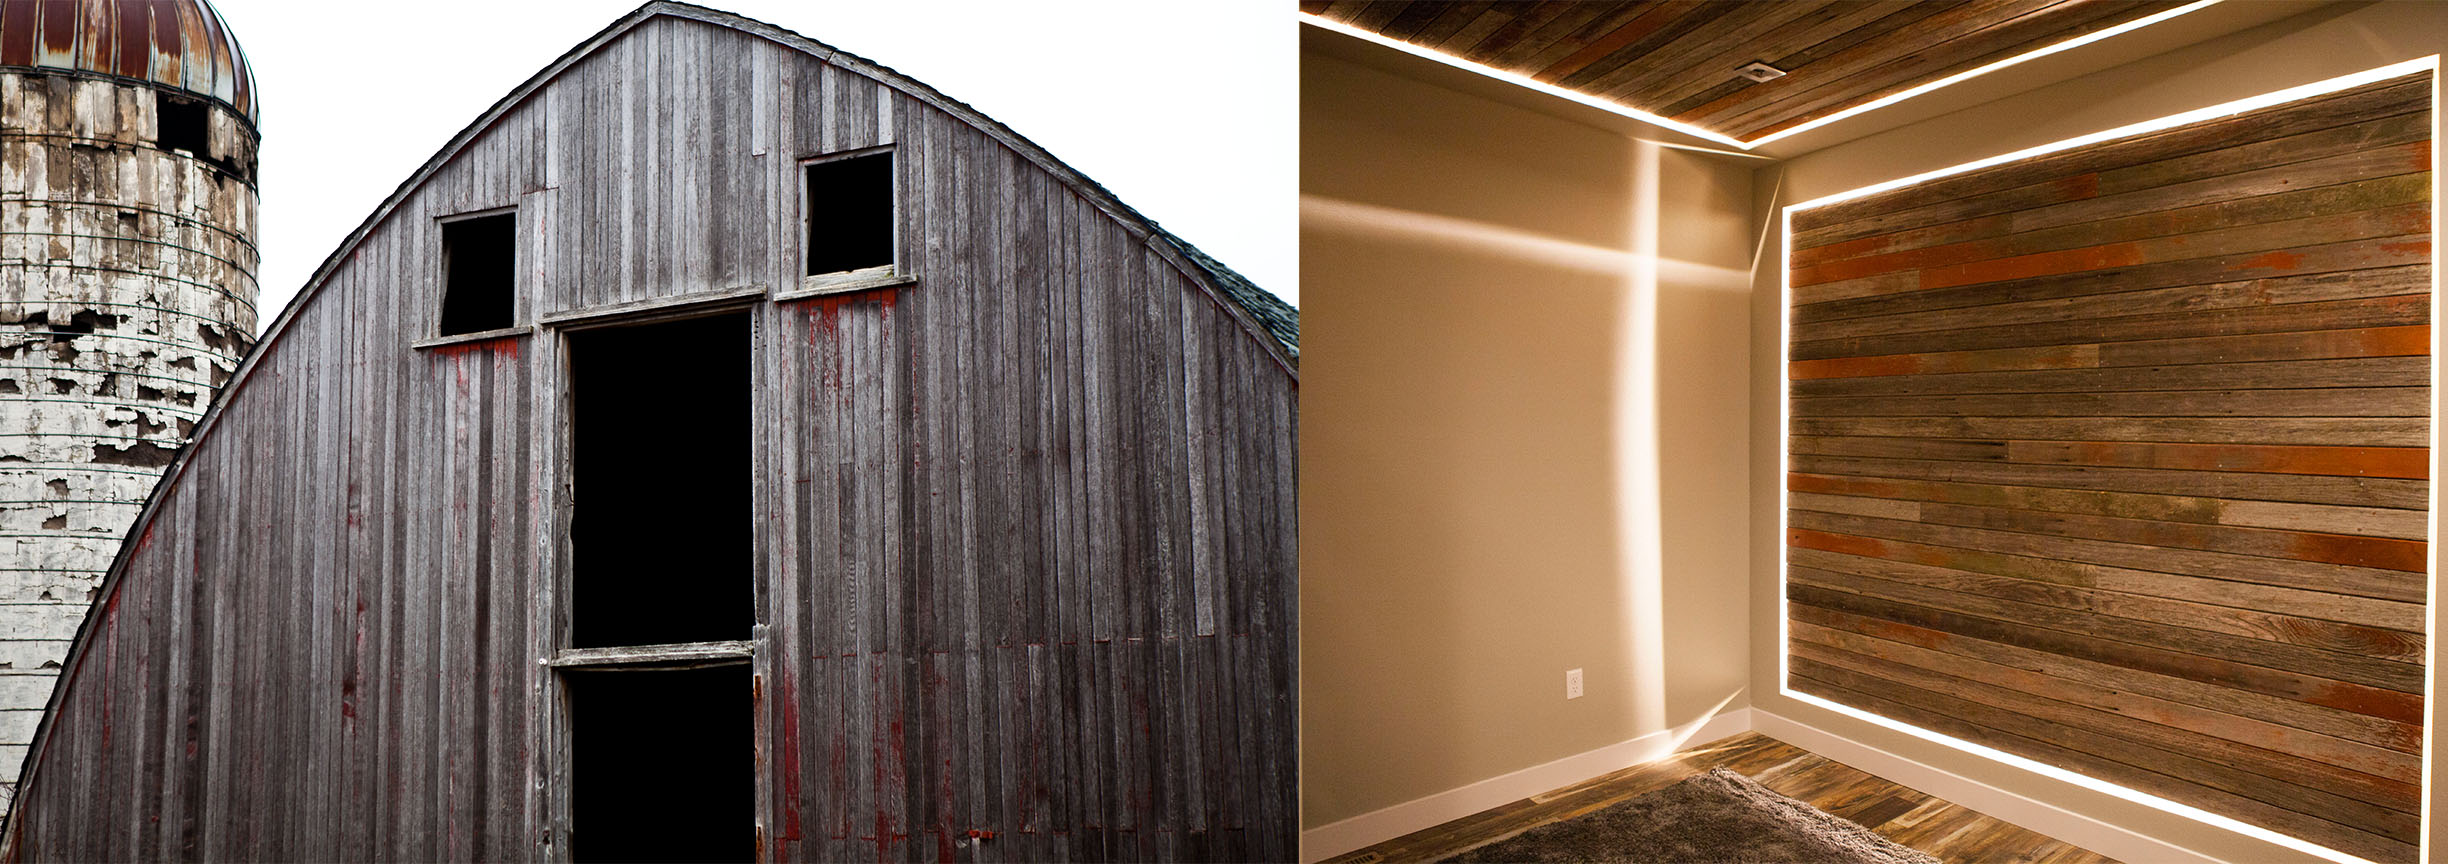 The Klassen Barns Redwood Has a New Home at Dudley's Rush